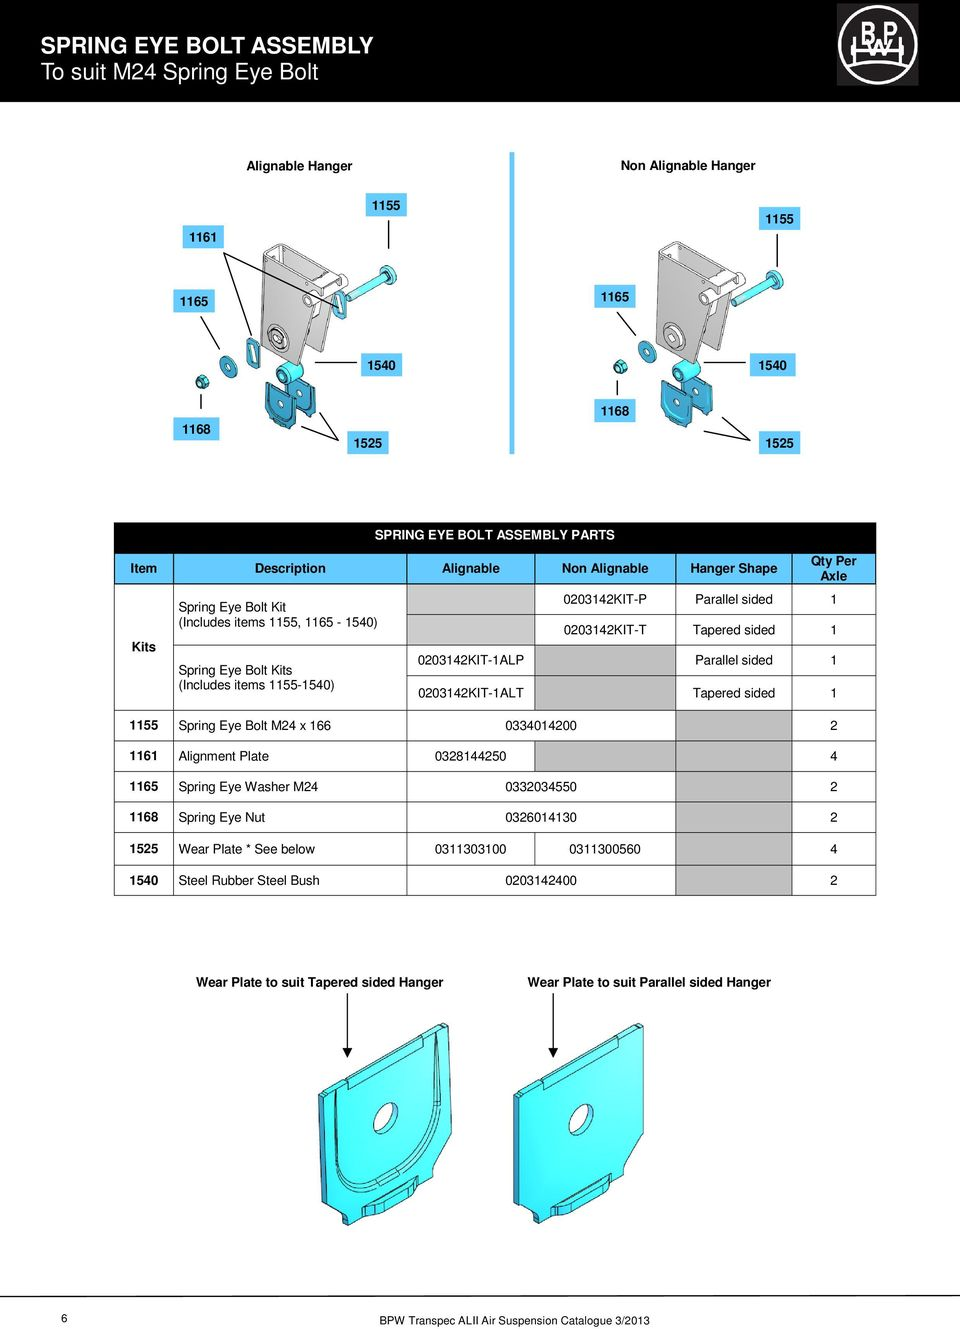 Bpw Transpec Air Light Ii Series Suspensions Spare Parts Wiring Diagram For Sign Tapered Sided 1 0203142kit 1alp Parallel 1alt 1155